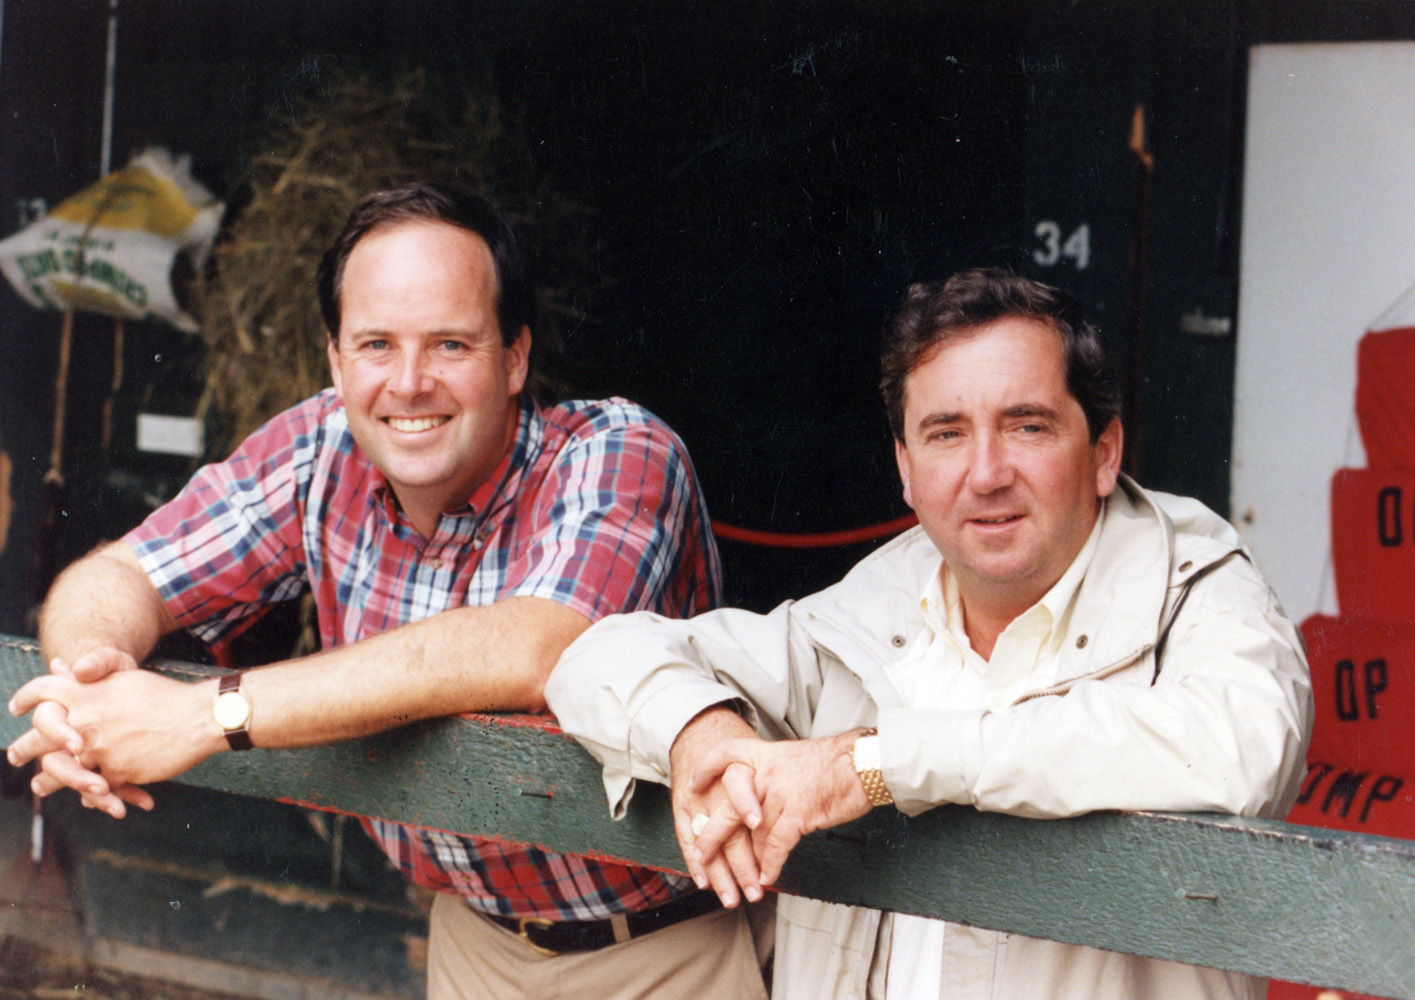 """""""Shug"""" McGaughey (on right) at Saratoga, August 1990 (Mike Pender/Museum Collection)"""